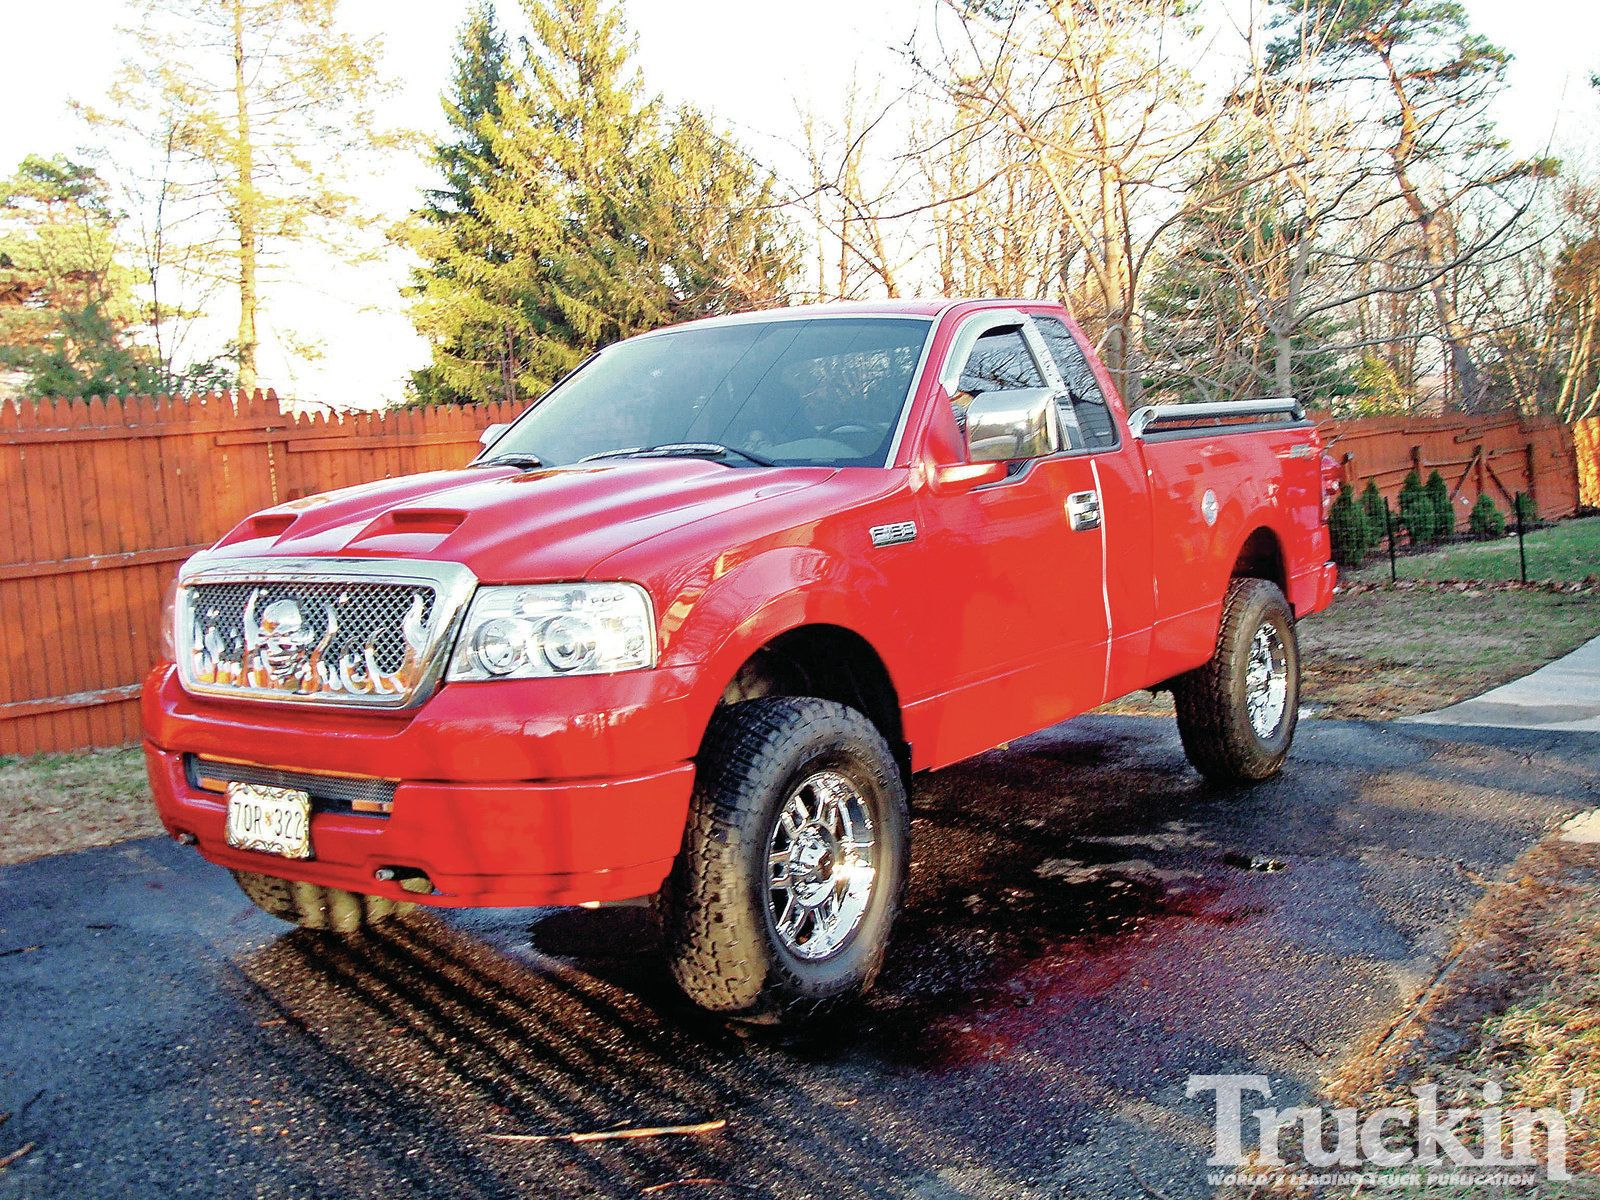 1204tr05+readersrides+2005fordf150 Lifted ford